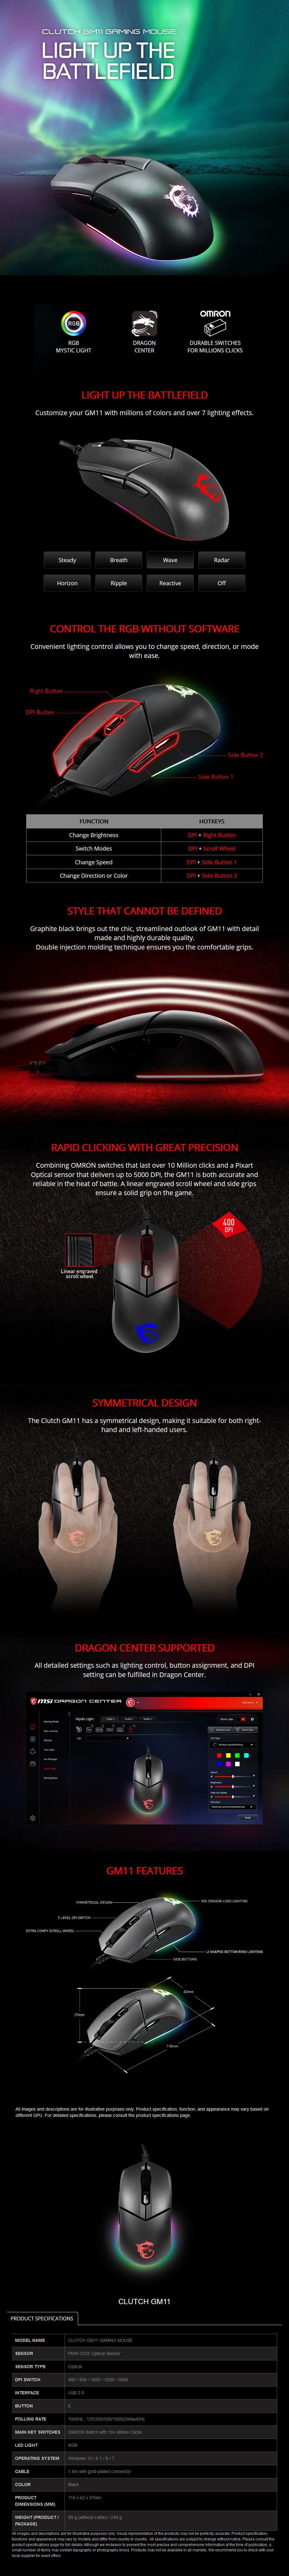 MSI Clutch GM11 Wired Optical Gaming Mouse - Overview 1